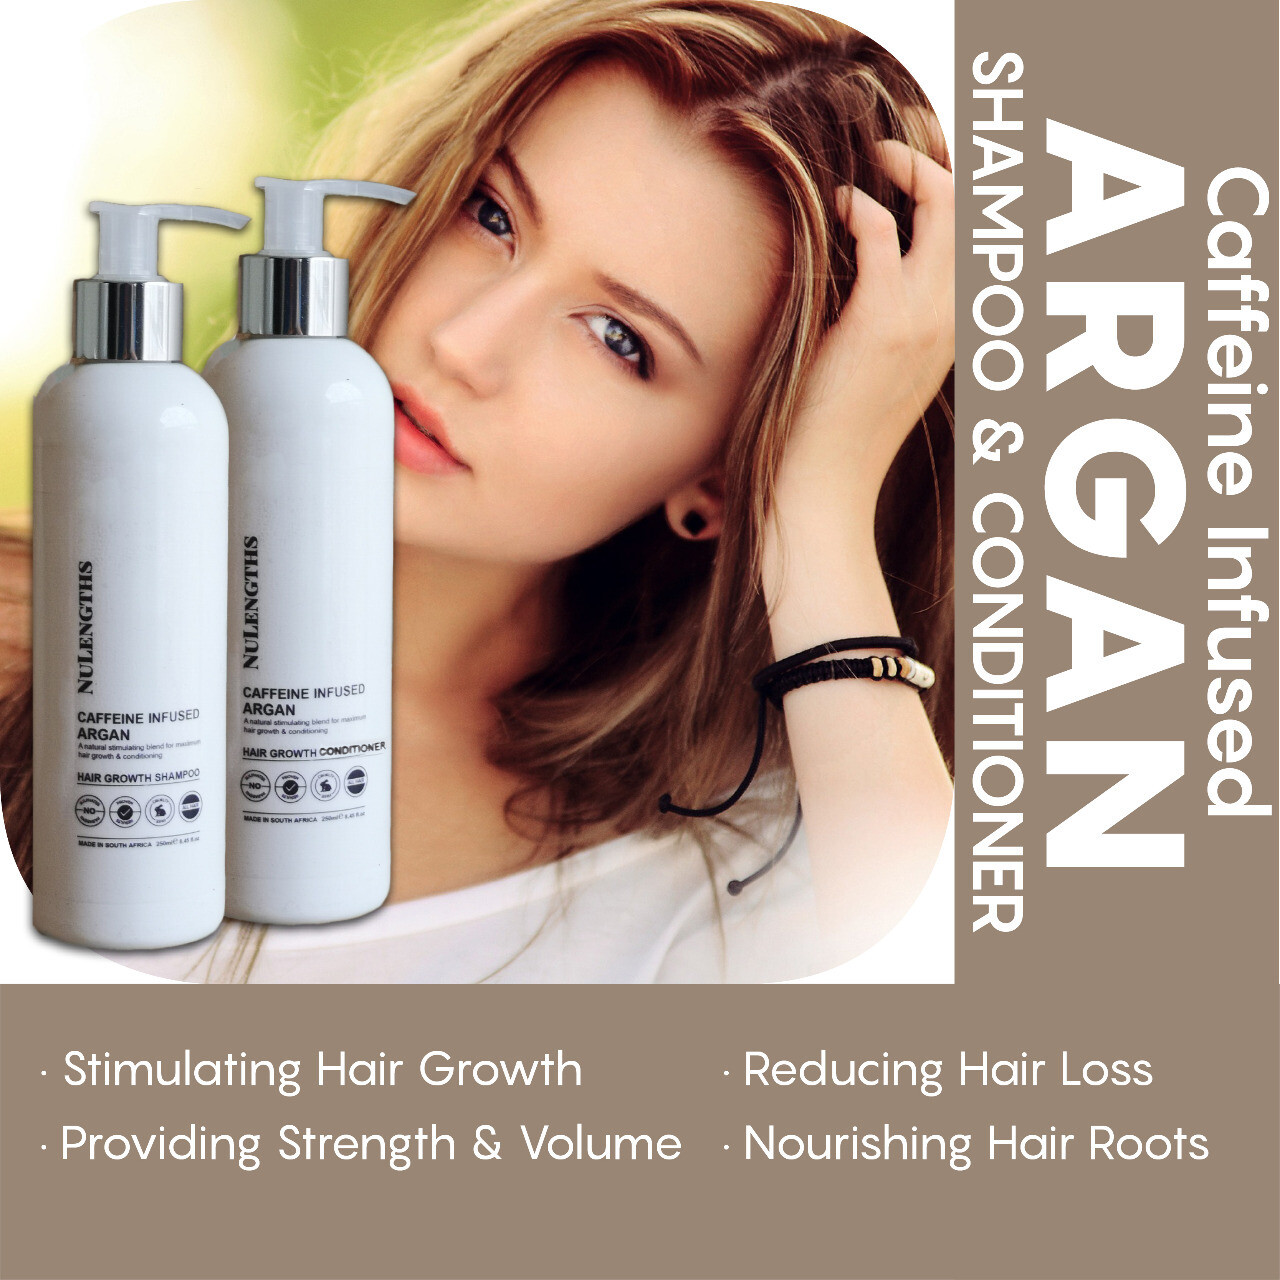 Caffeine Infused Argan Hair Growth Shampoo & Conditioner Combo